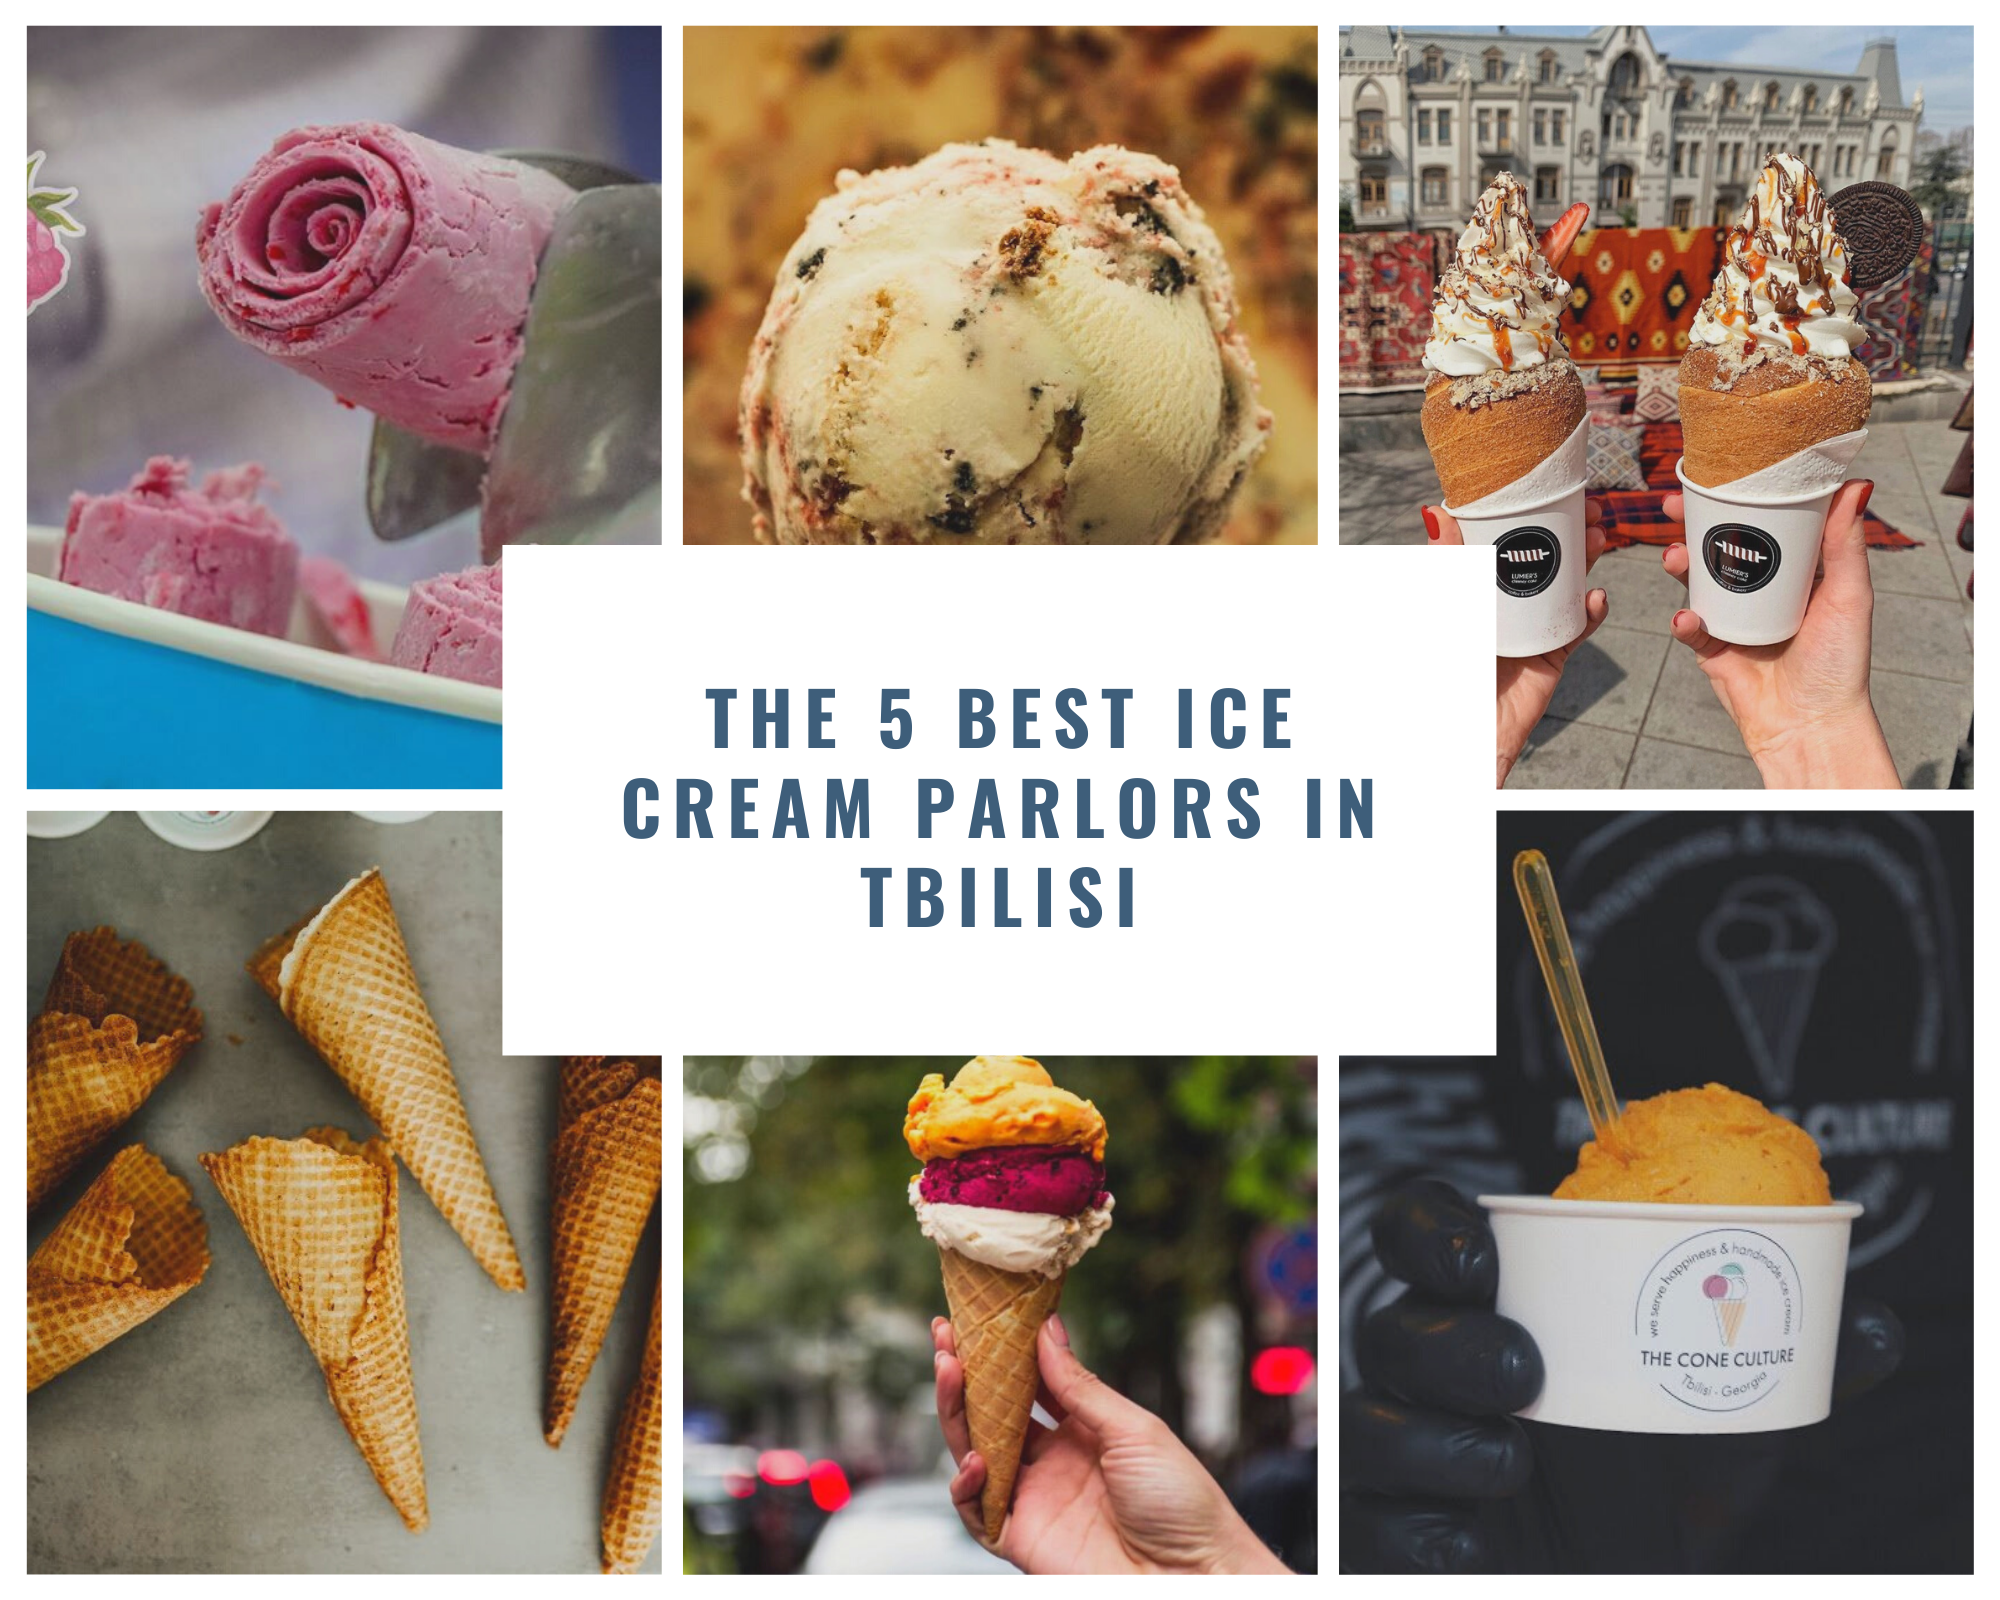 The 5 Best Ice Cream Parlors In Tbilisi